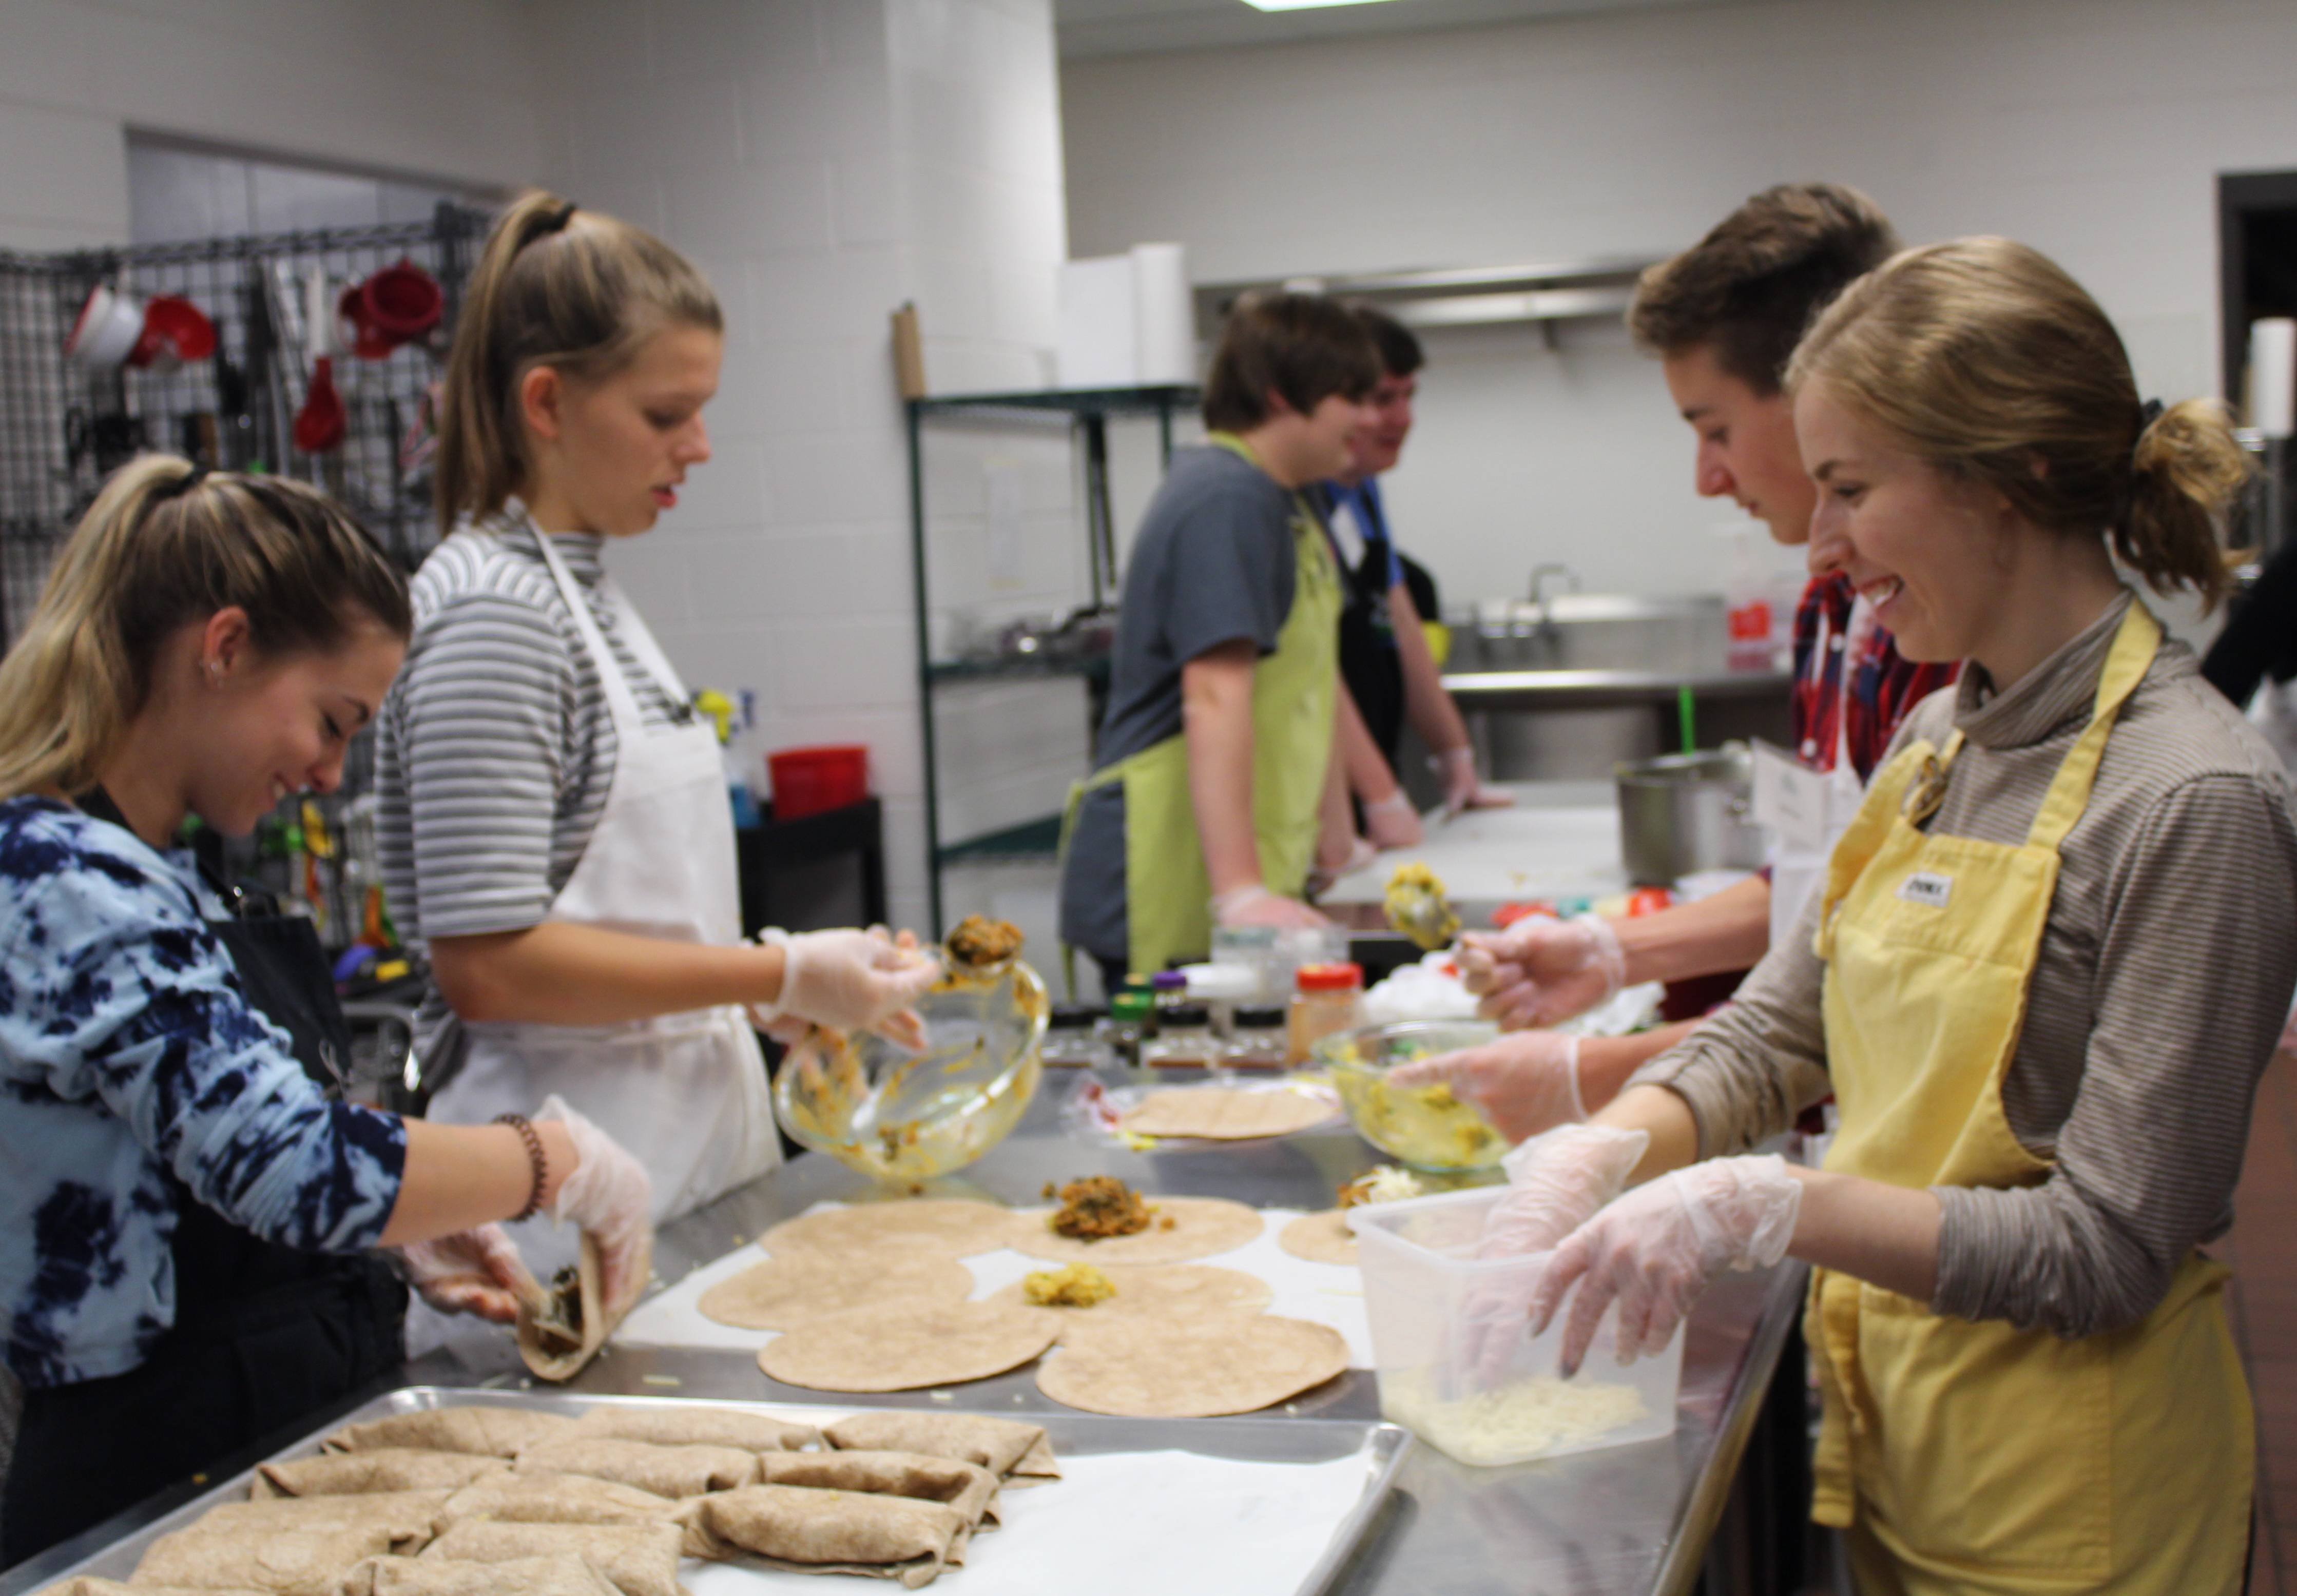 Kitchen mentor Sarah Wais, on right, works with high school students in the Fox Valley Food for Health kitchen in preparing healthy meals for those suffering from cancer and other illnesses. The nonprofit will hold a Spring Market on March 30 in Geneva to showcase healthy foods and food-related businesses.